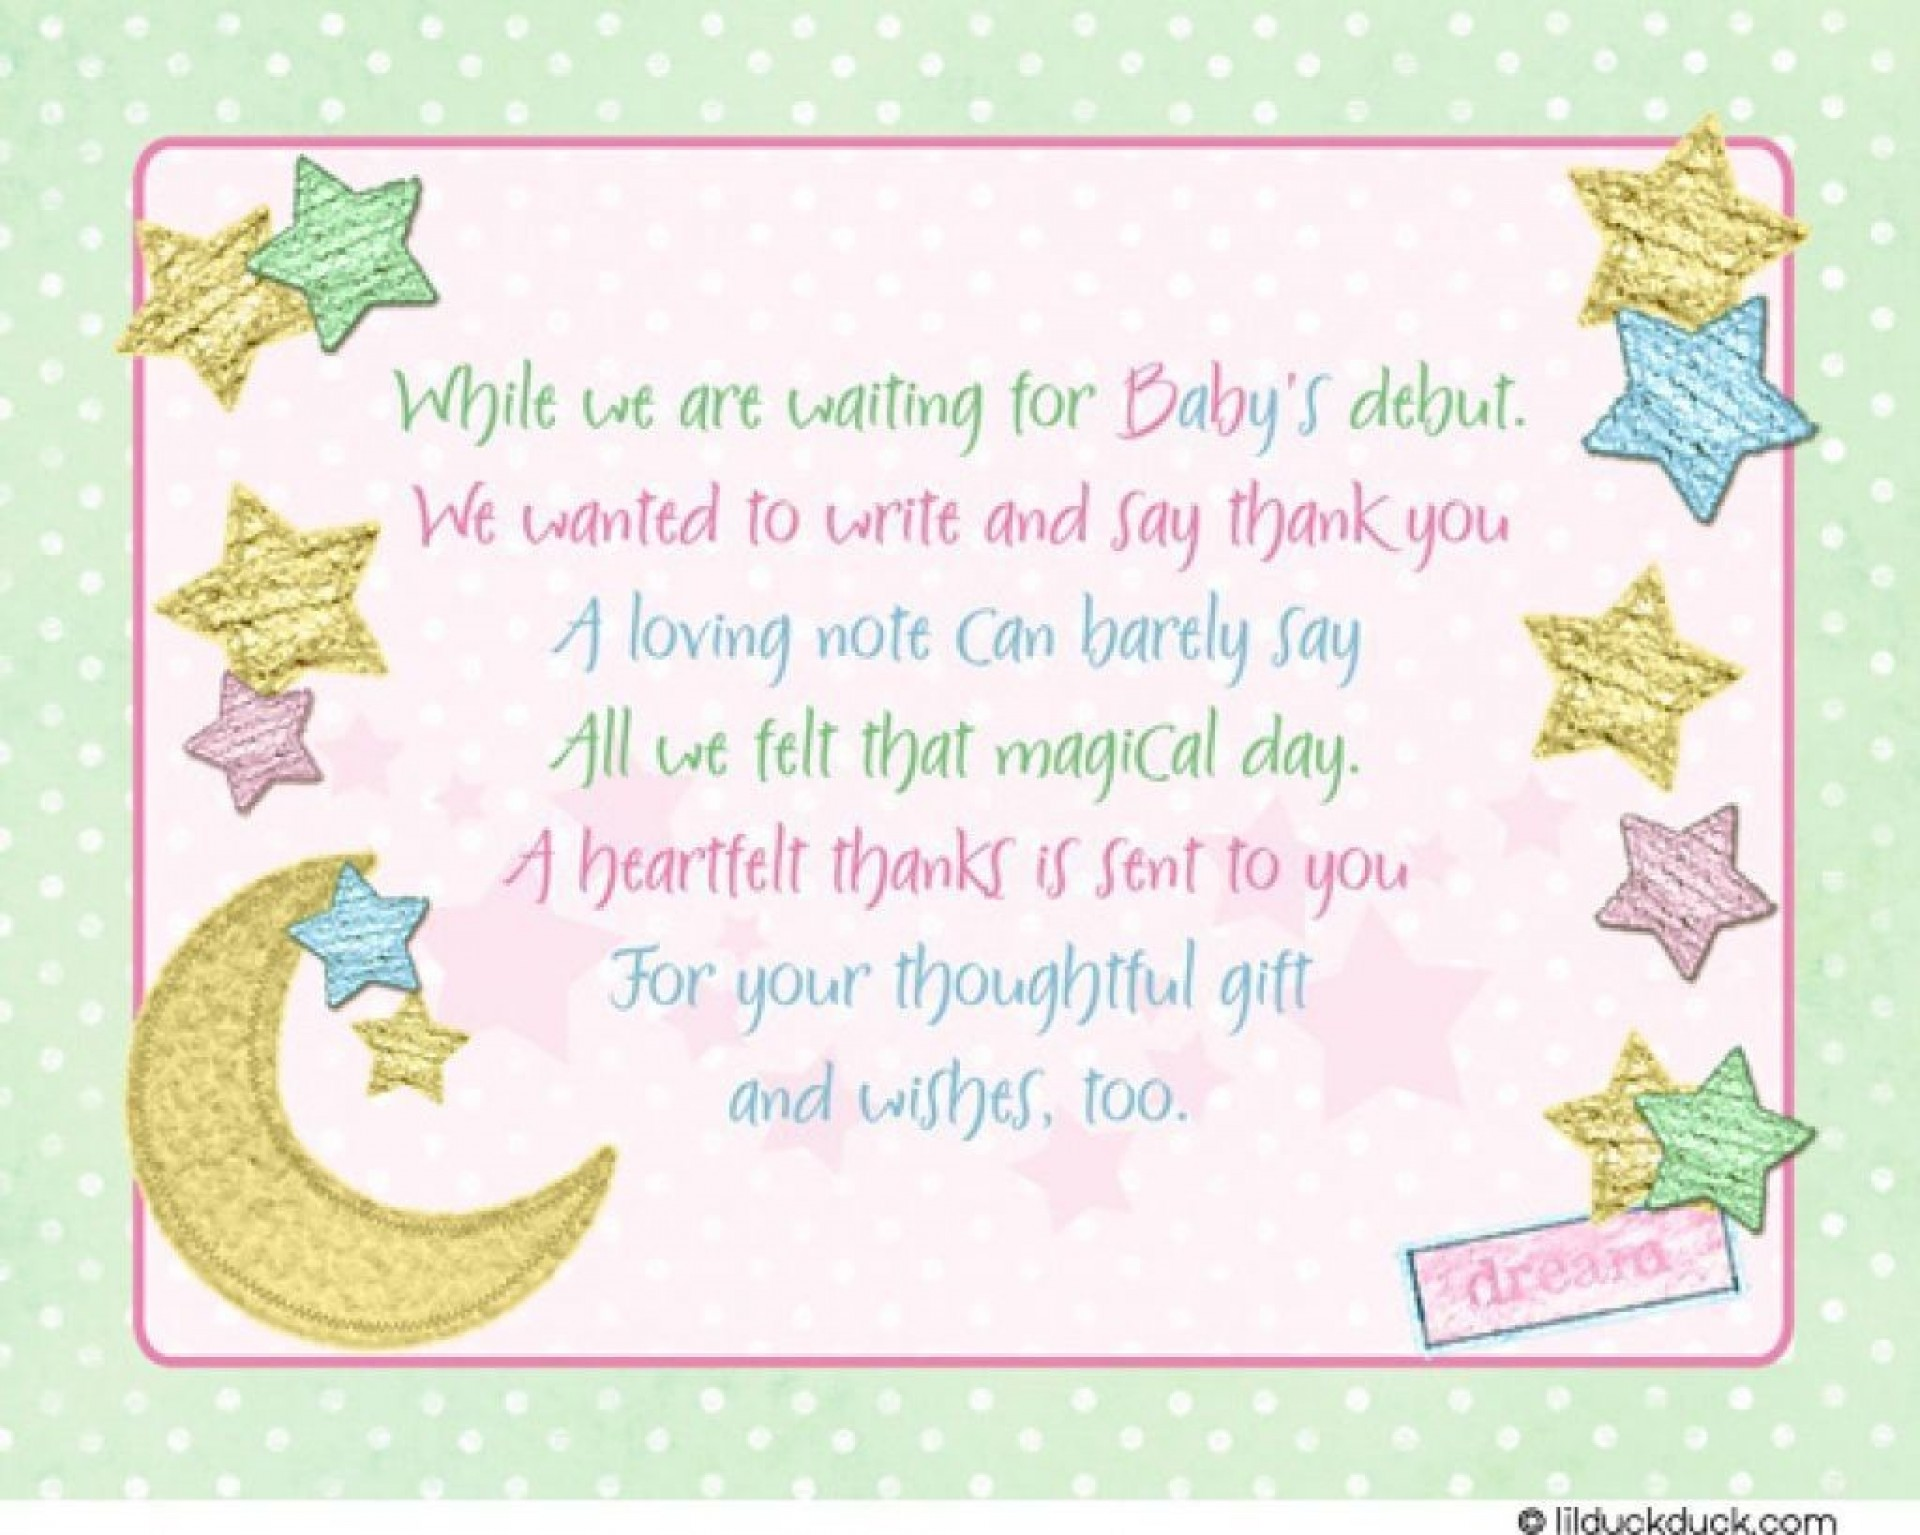 007 Striking Thank You Note Template Baby Shower Photo  Card Free Sample For Letter Gift1920